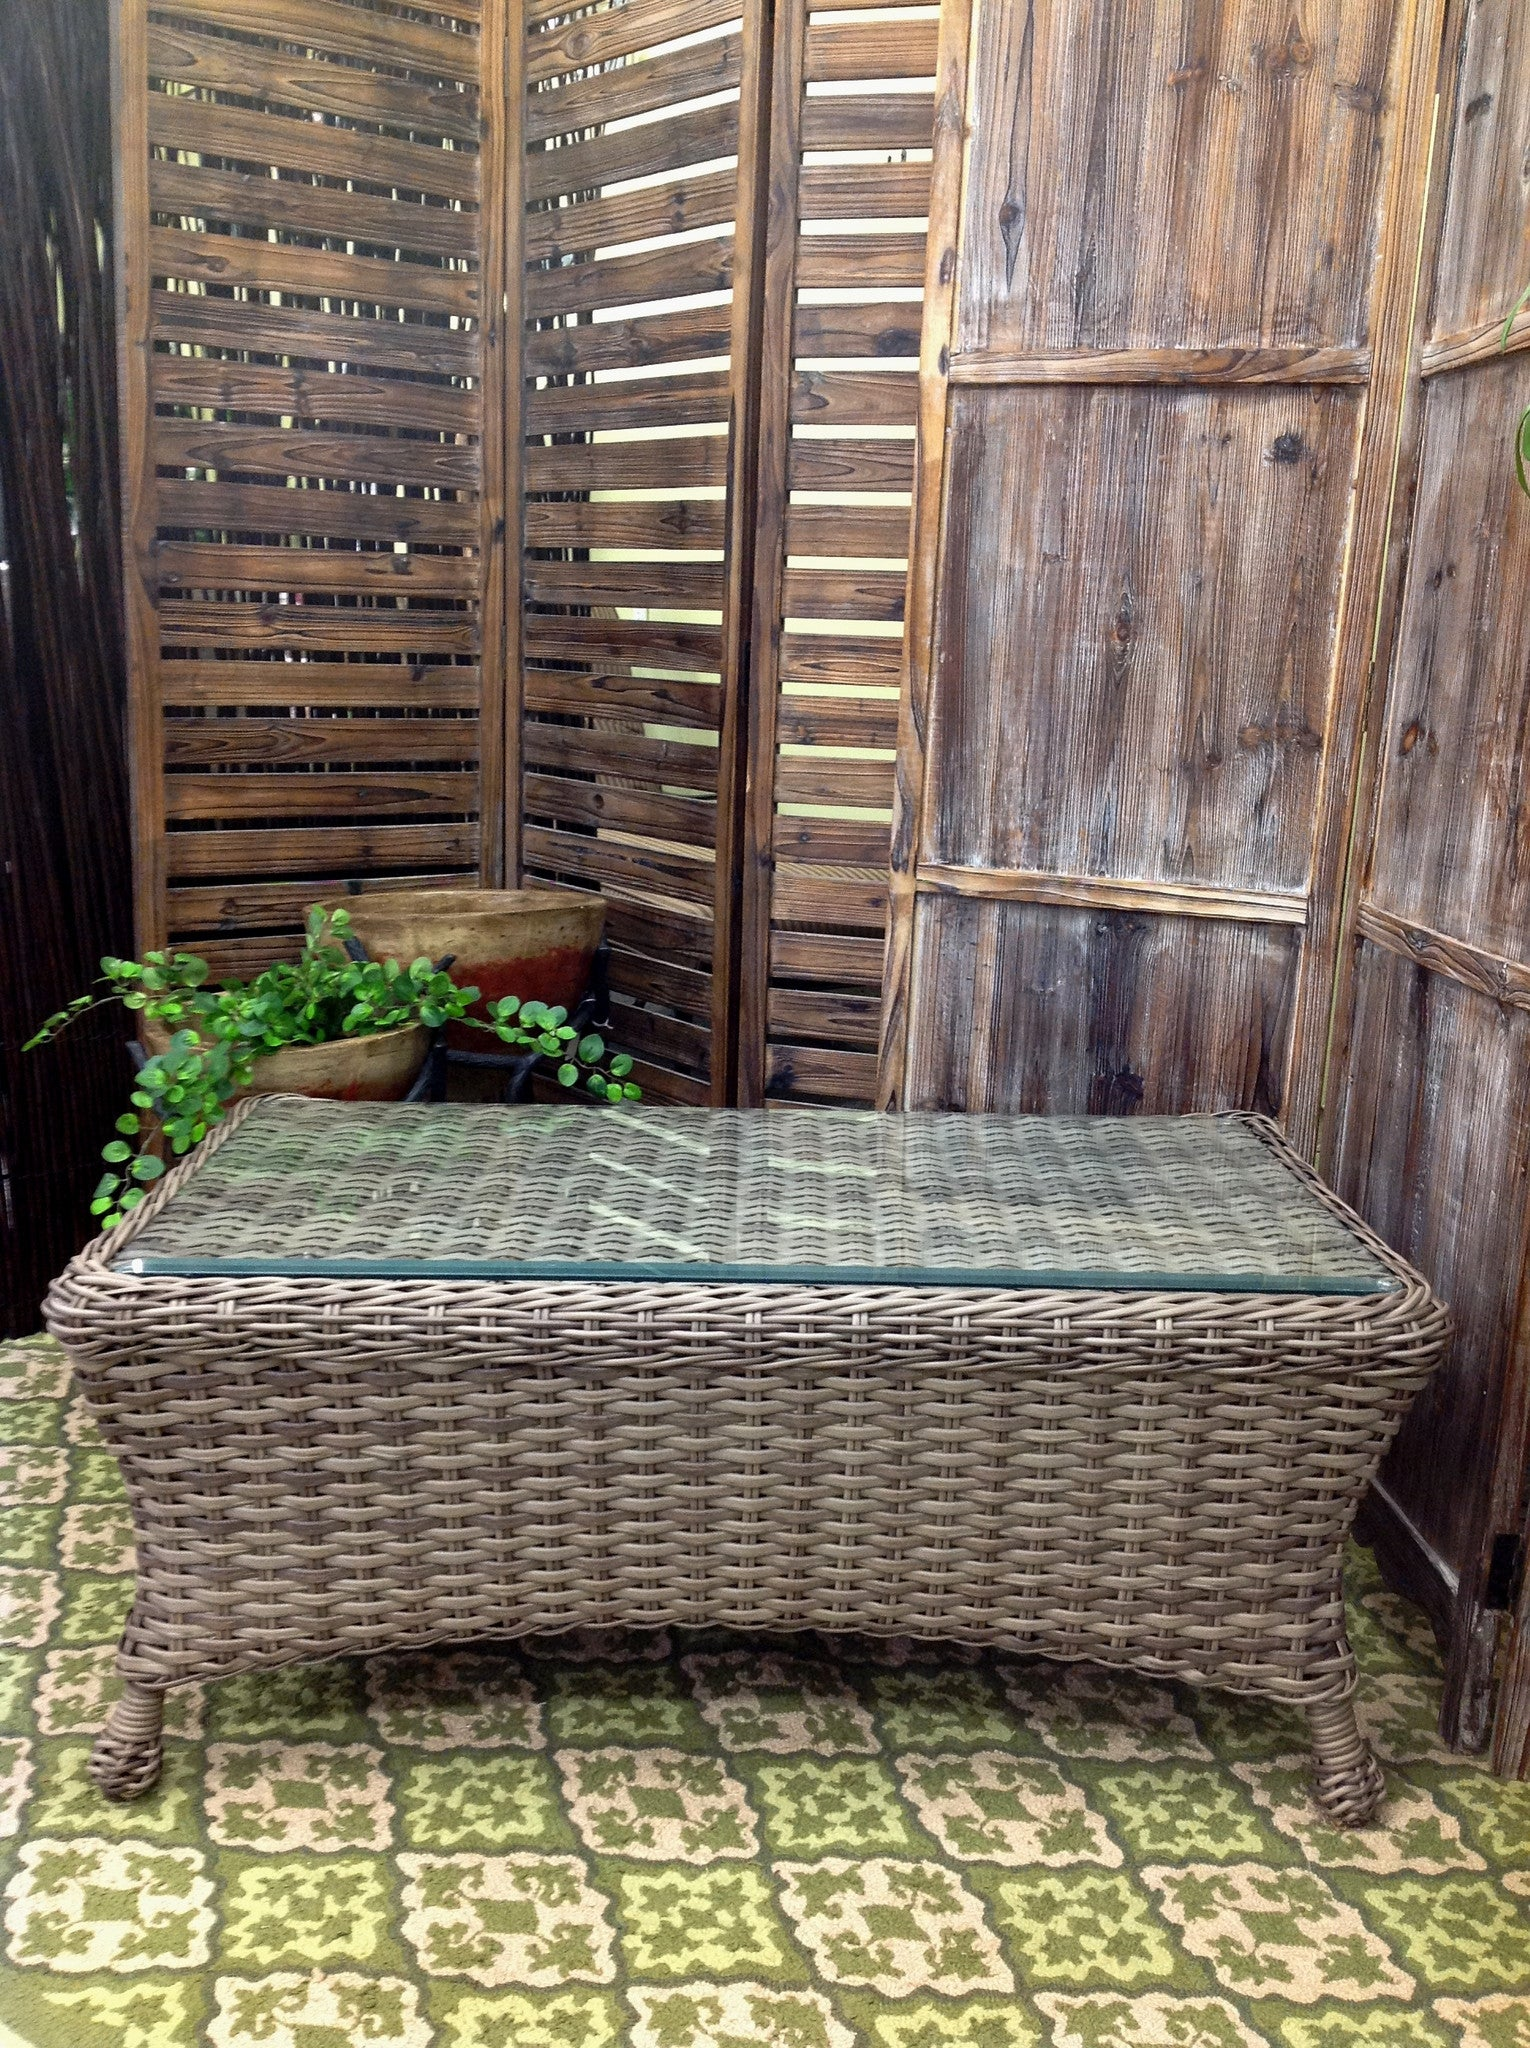 Captiva Outdoor Patio Woven Top Coffee Table With Glass - Warehouse Clearance - Outdoor Furniture, Indoor Furniture & Upholstery Store Spokane - Jacobs Custom Living